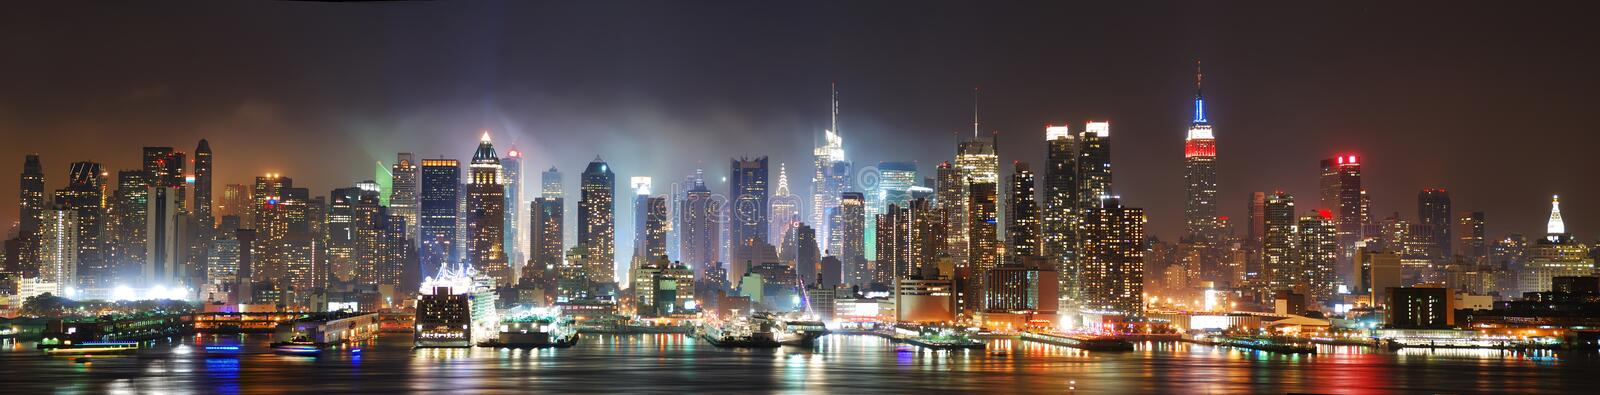 New York City Manhattan foto de stock royalty free